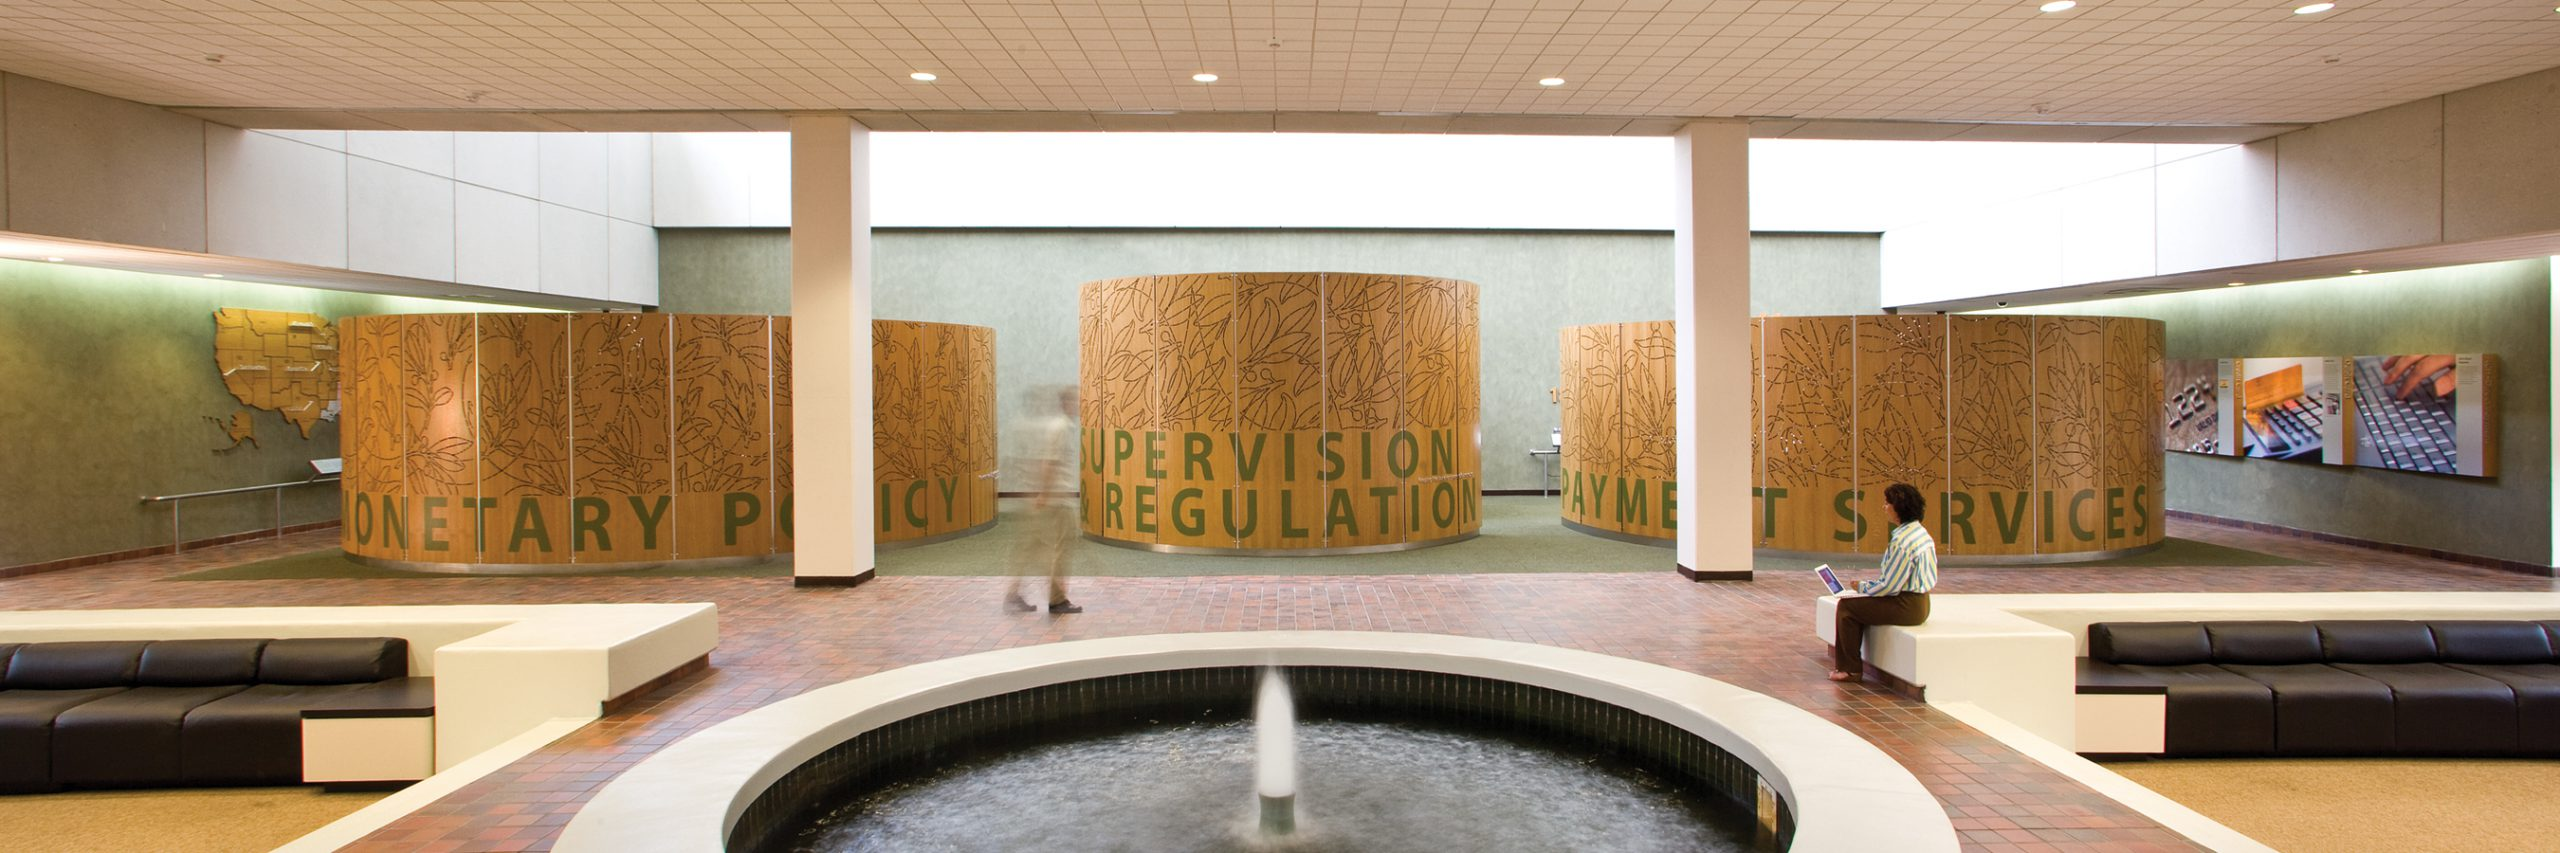 Project image 1 for Miami Fed Exhibits, Federal Reserve Bank of Atlanta